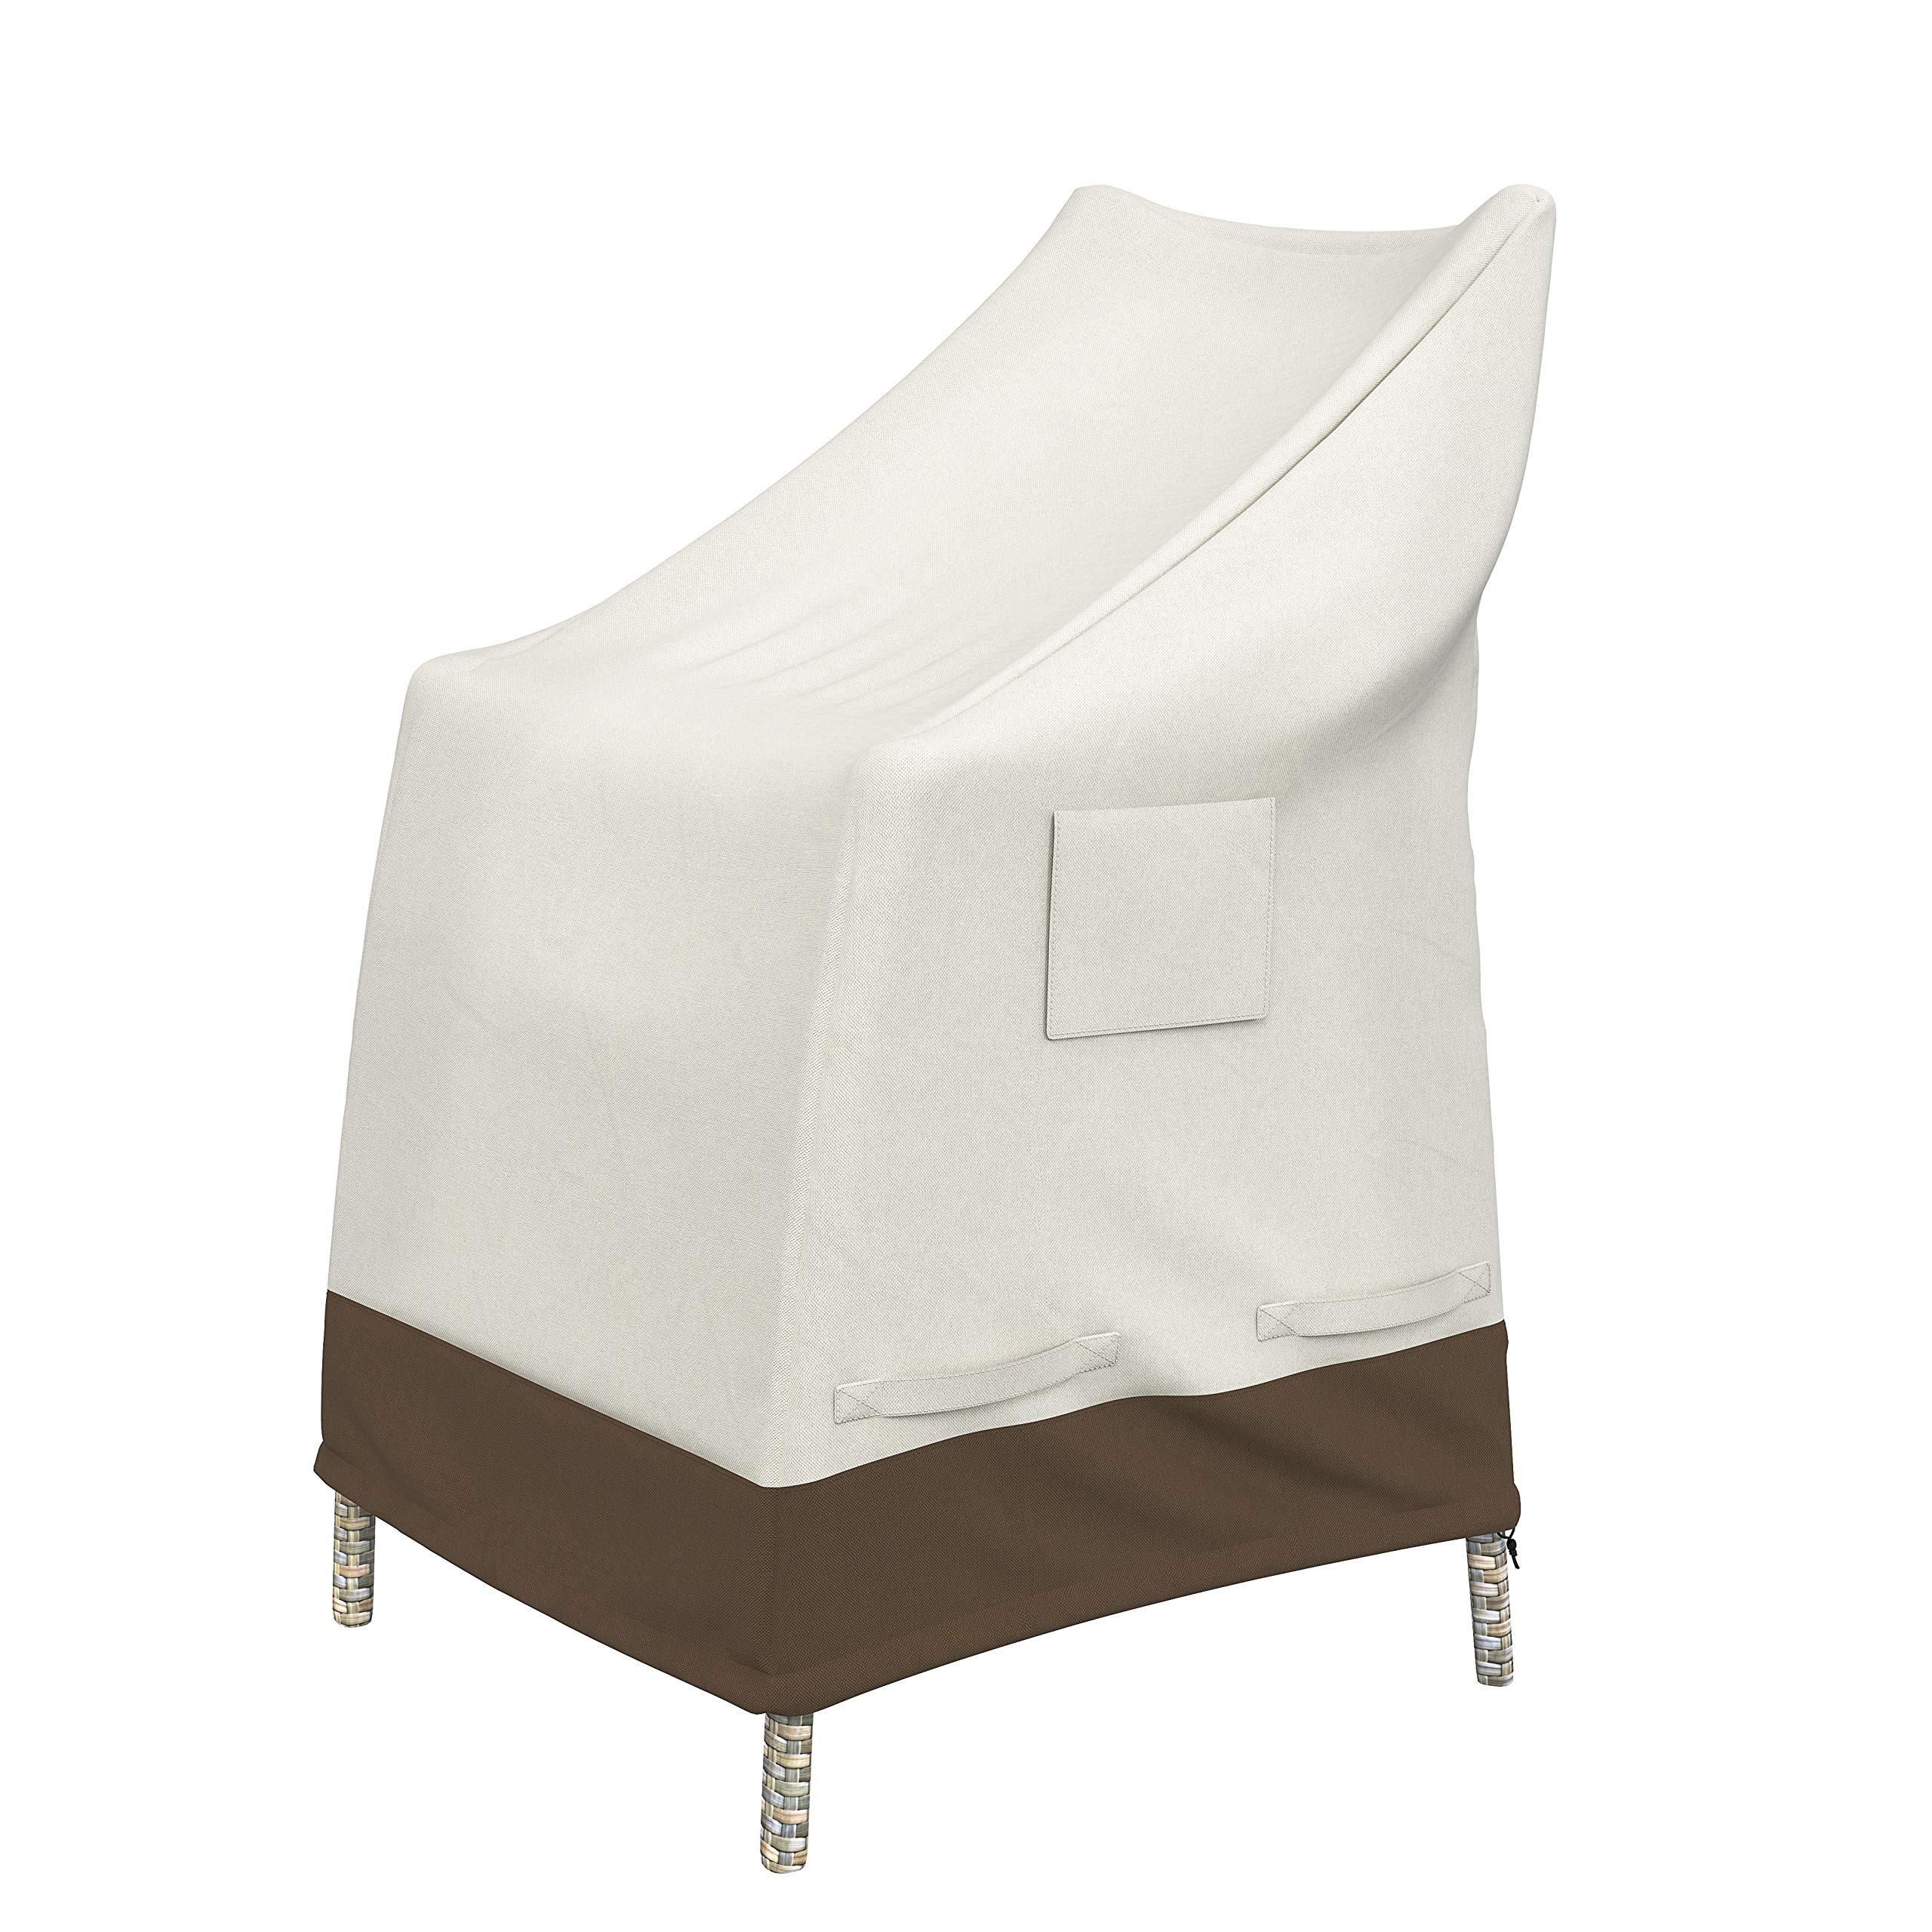 Amazon Basics High-Back Chair Outdoor Patio Furniture Cover